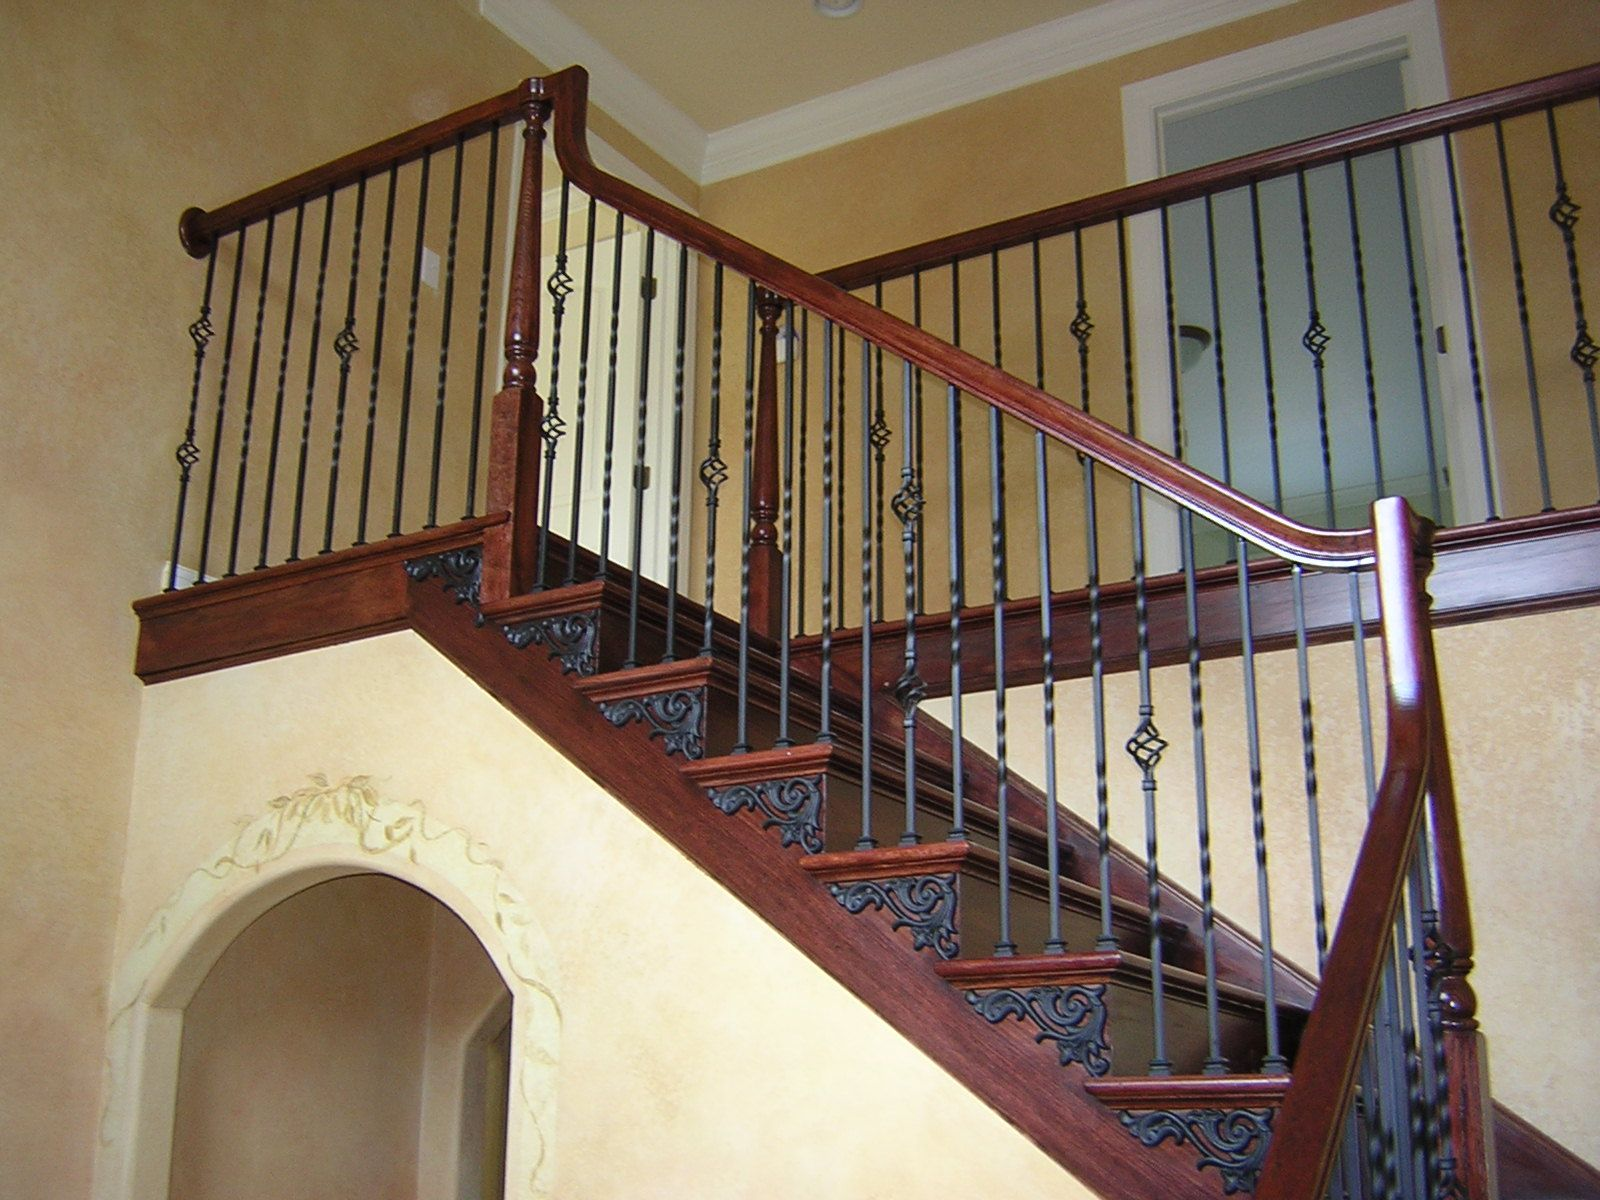 Stair With Satin Black Iron Baers Brackets 1 Jpg 600 200 Pixels Railing Wrought